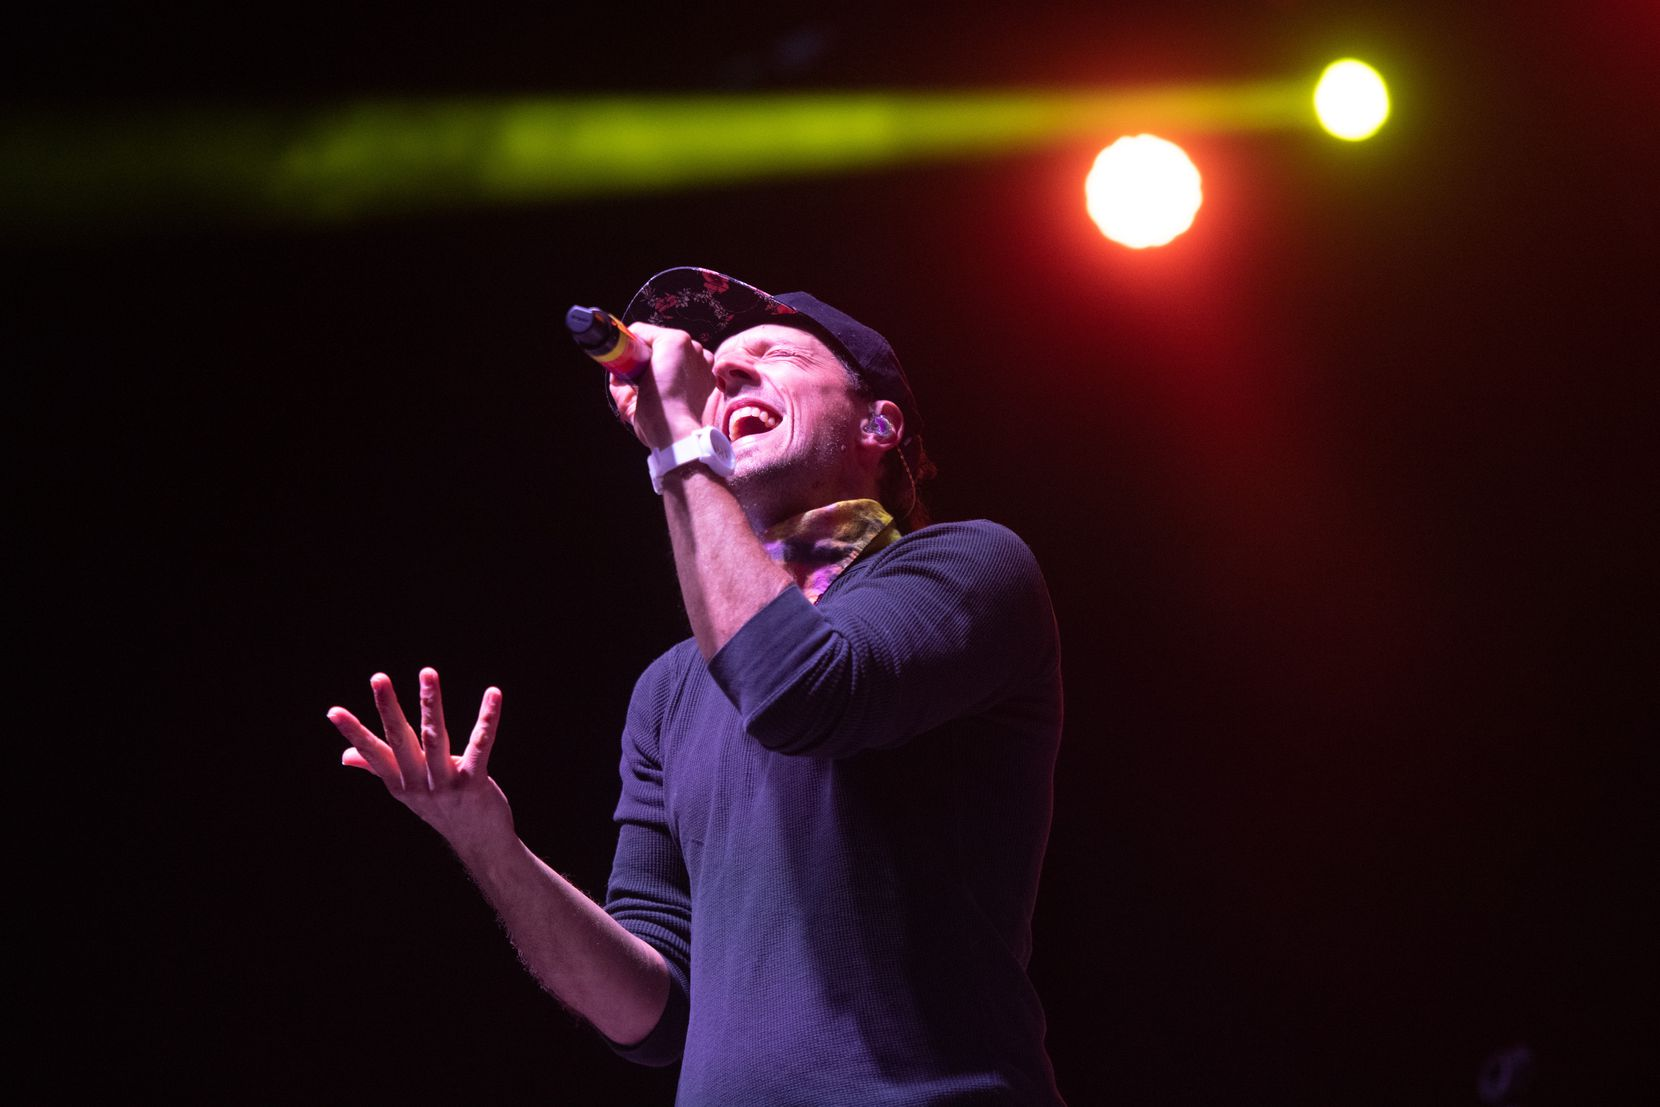 """Jason Mraz - ANAHEIM, CALIFORNIA - APRIL 23: Singer Jason Mraz performs onstage during a drive-through concert in support of his new album """"Seek the good"""" at Anaheim City National Grove on April 23, 2021 in Anaheim, California.  (Photo by Scott Dudelson / Getty Images)"""